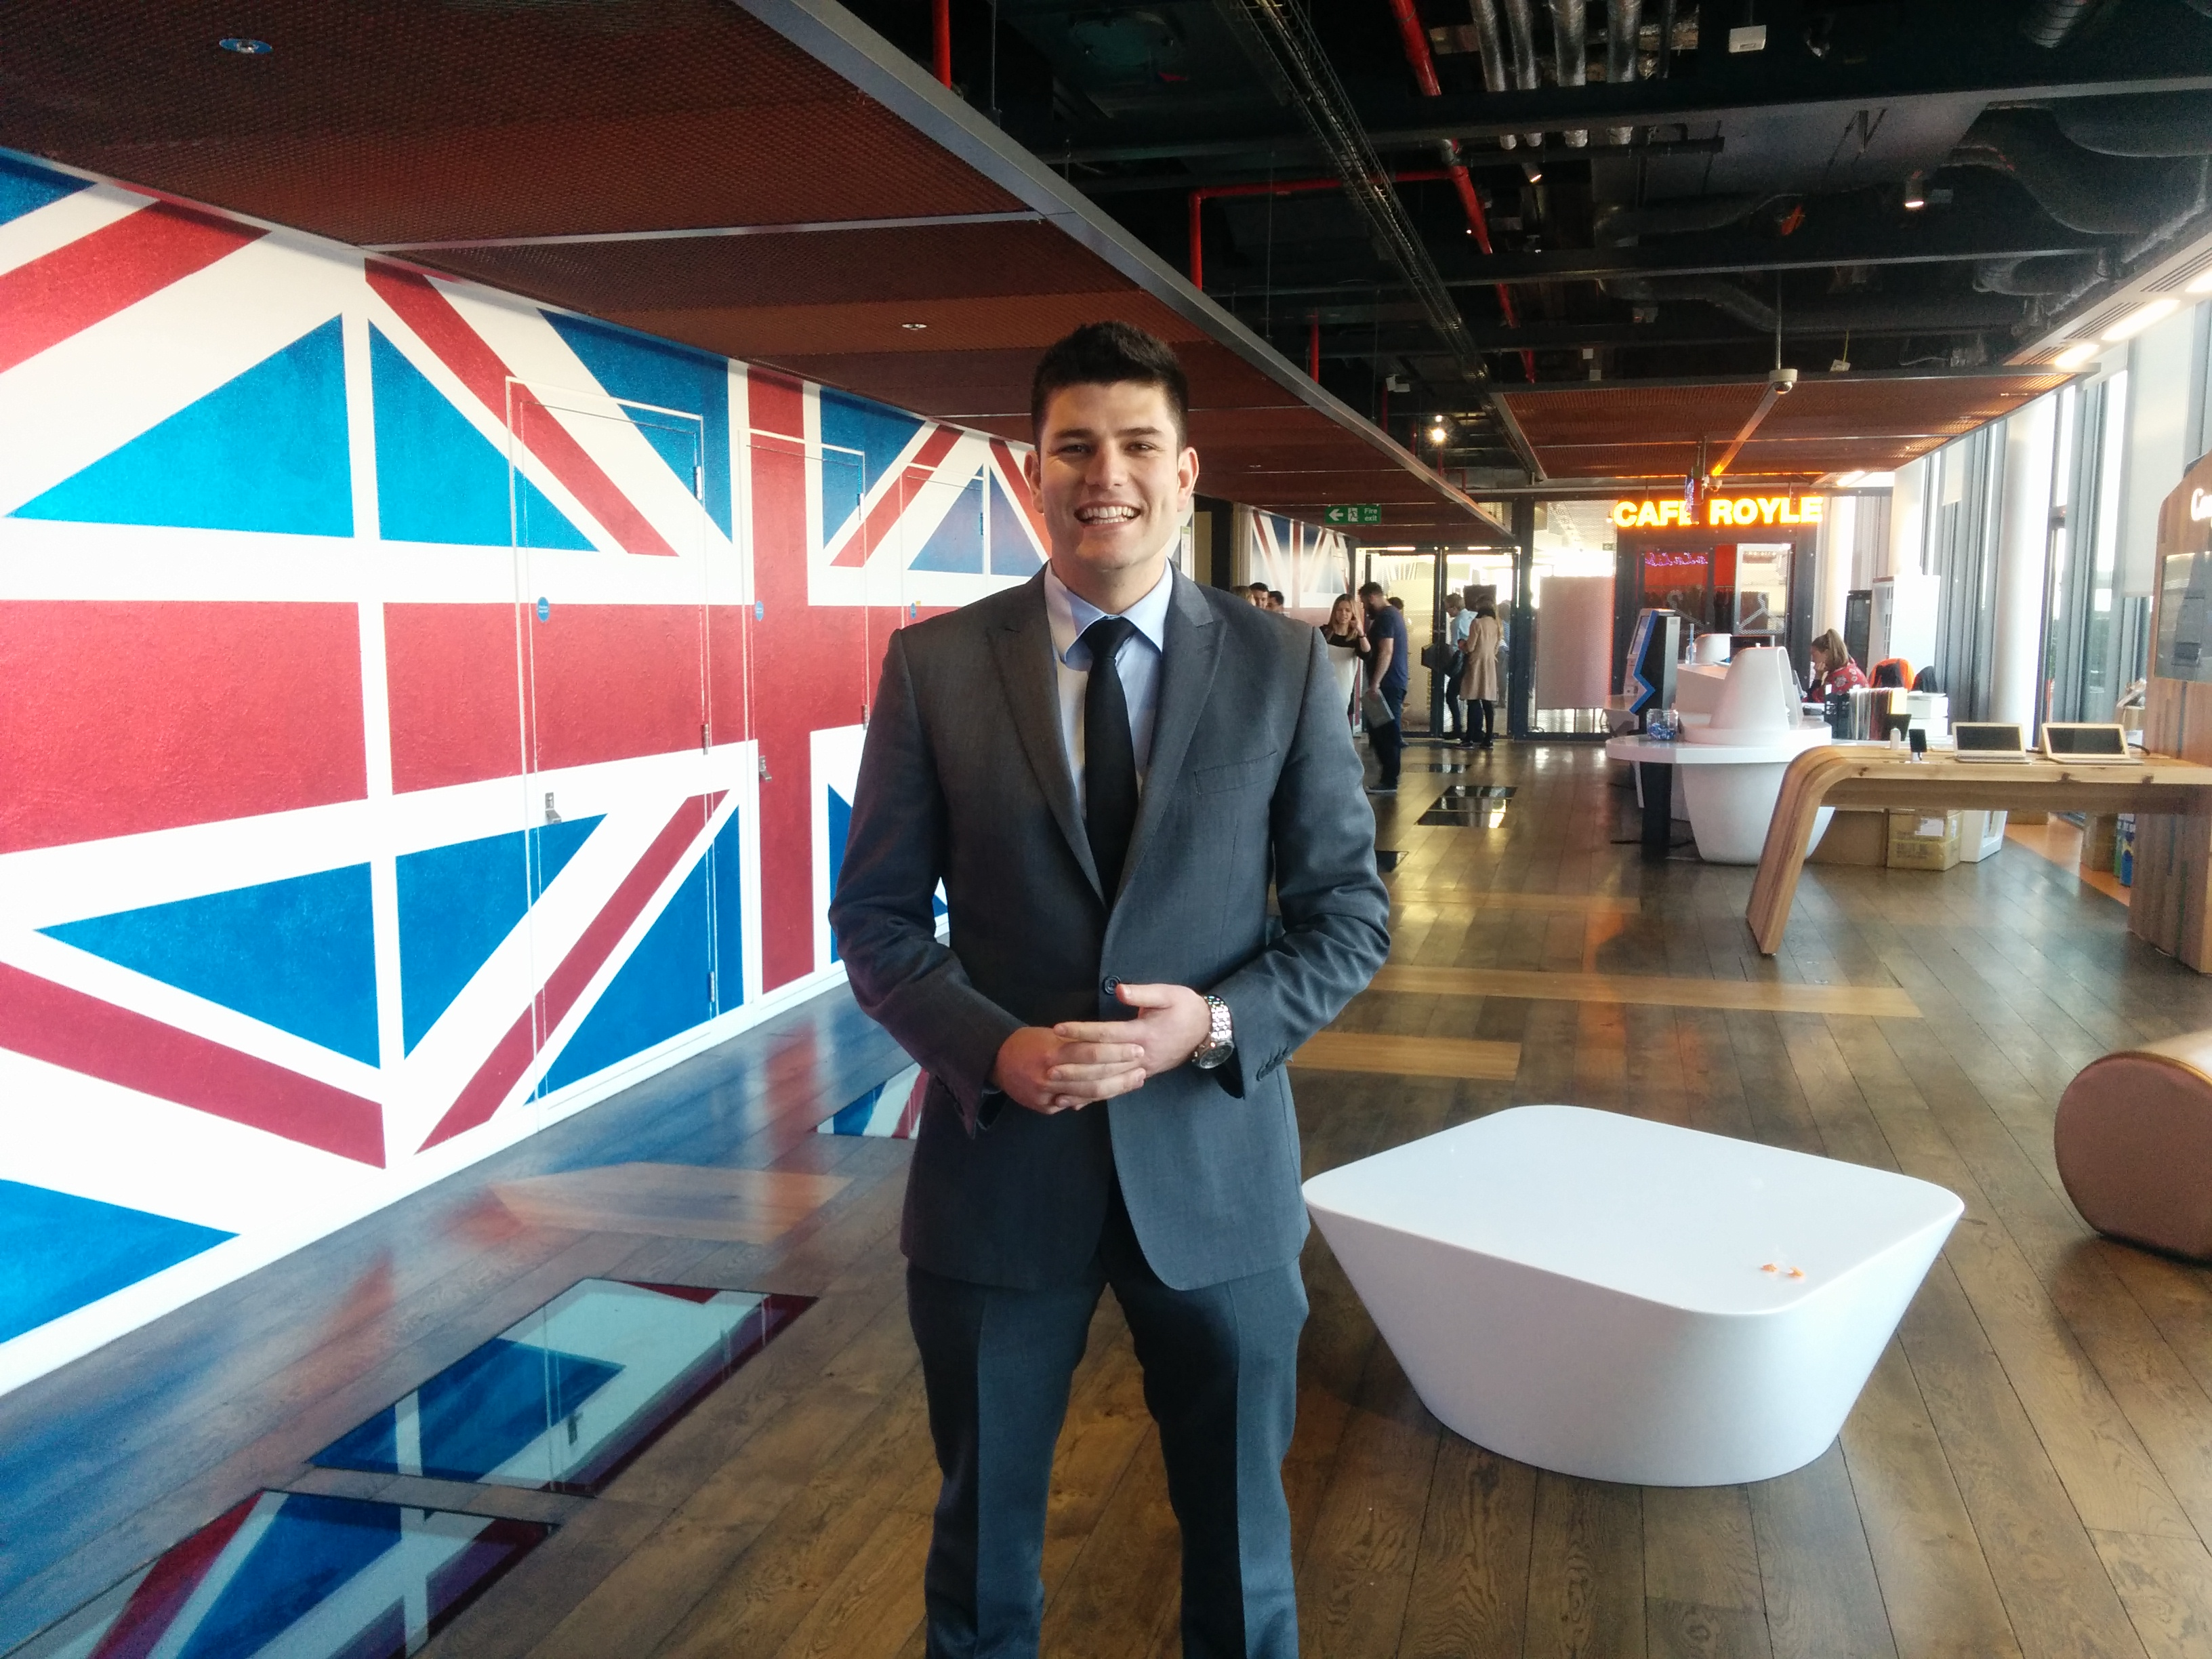 Top tips for 2016 from The Apprentice winner Mark Wright